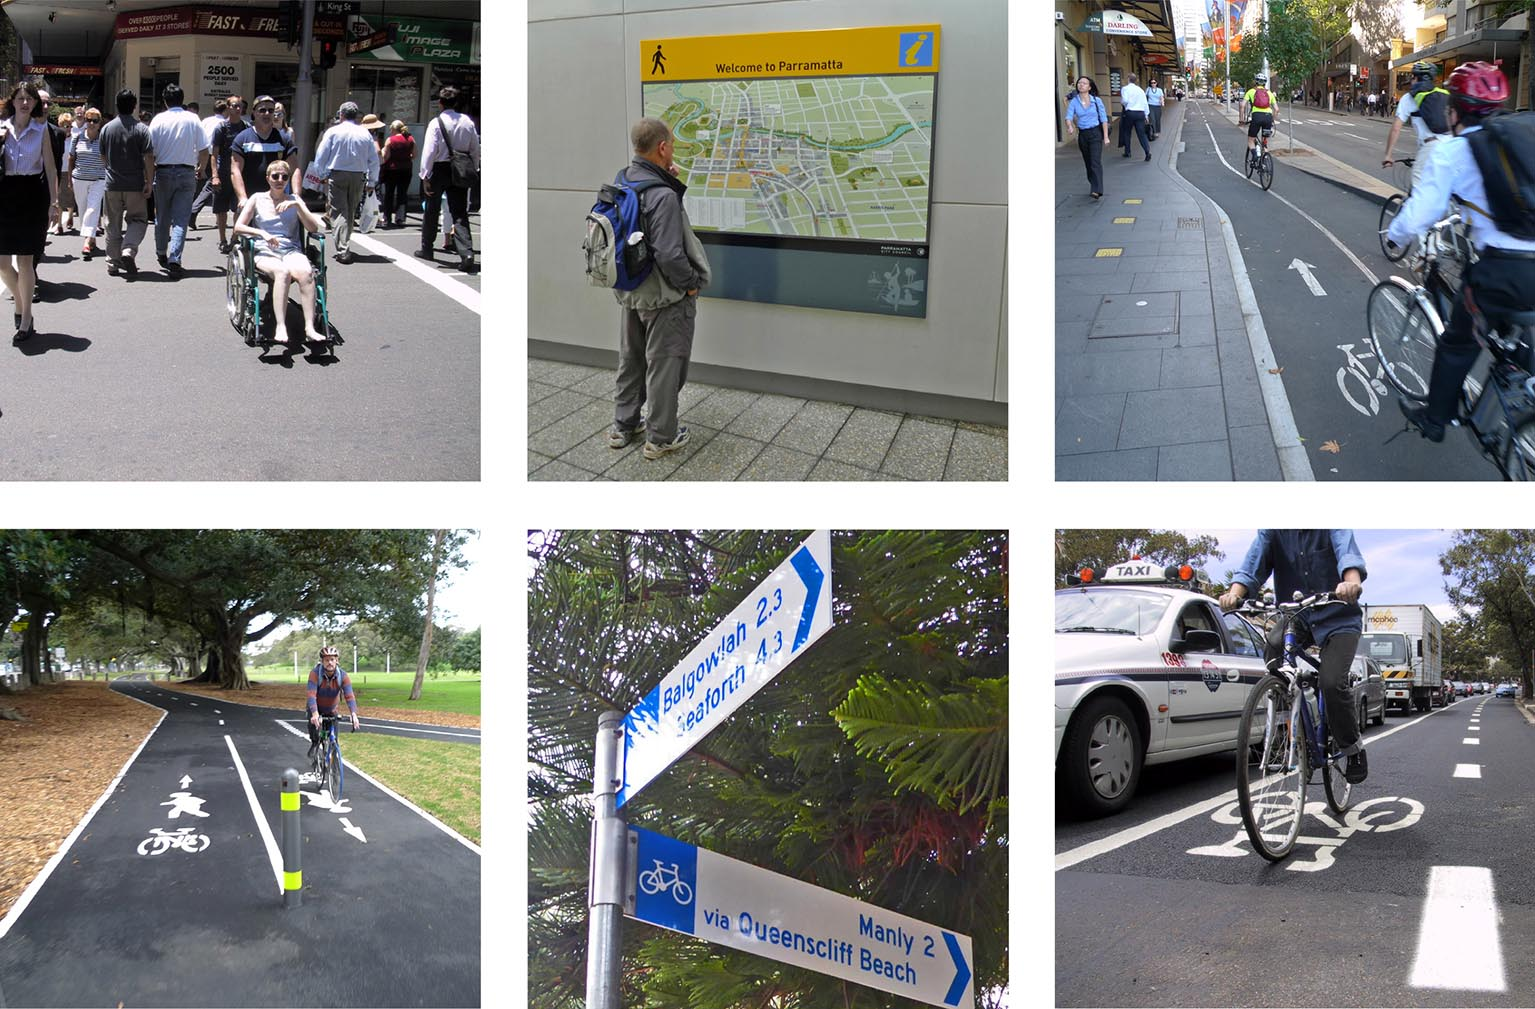 Collection of images of people using a wheel chair, looking at wayfindging and a two off road shared paths